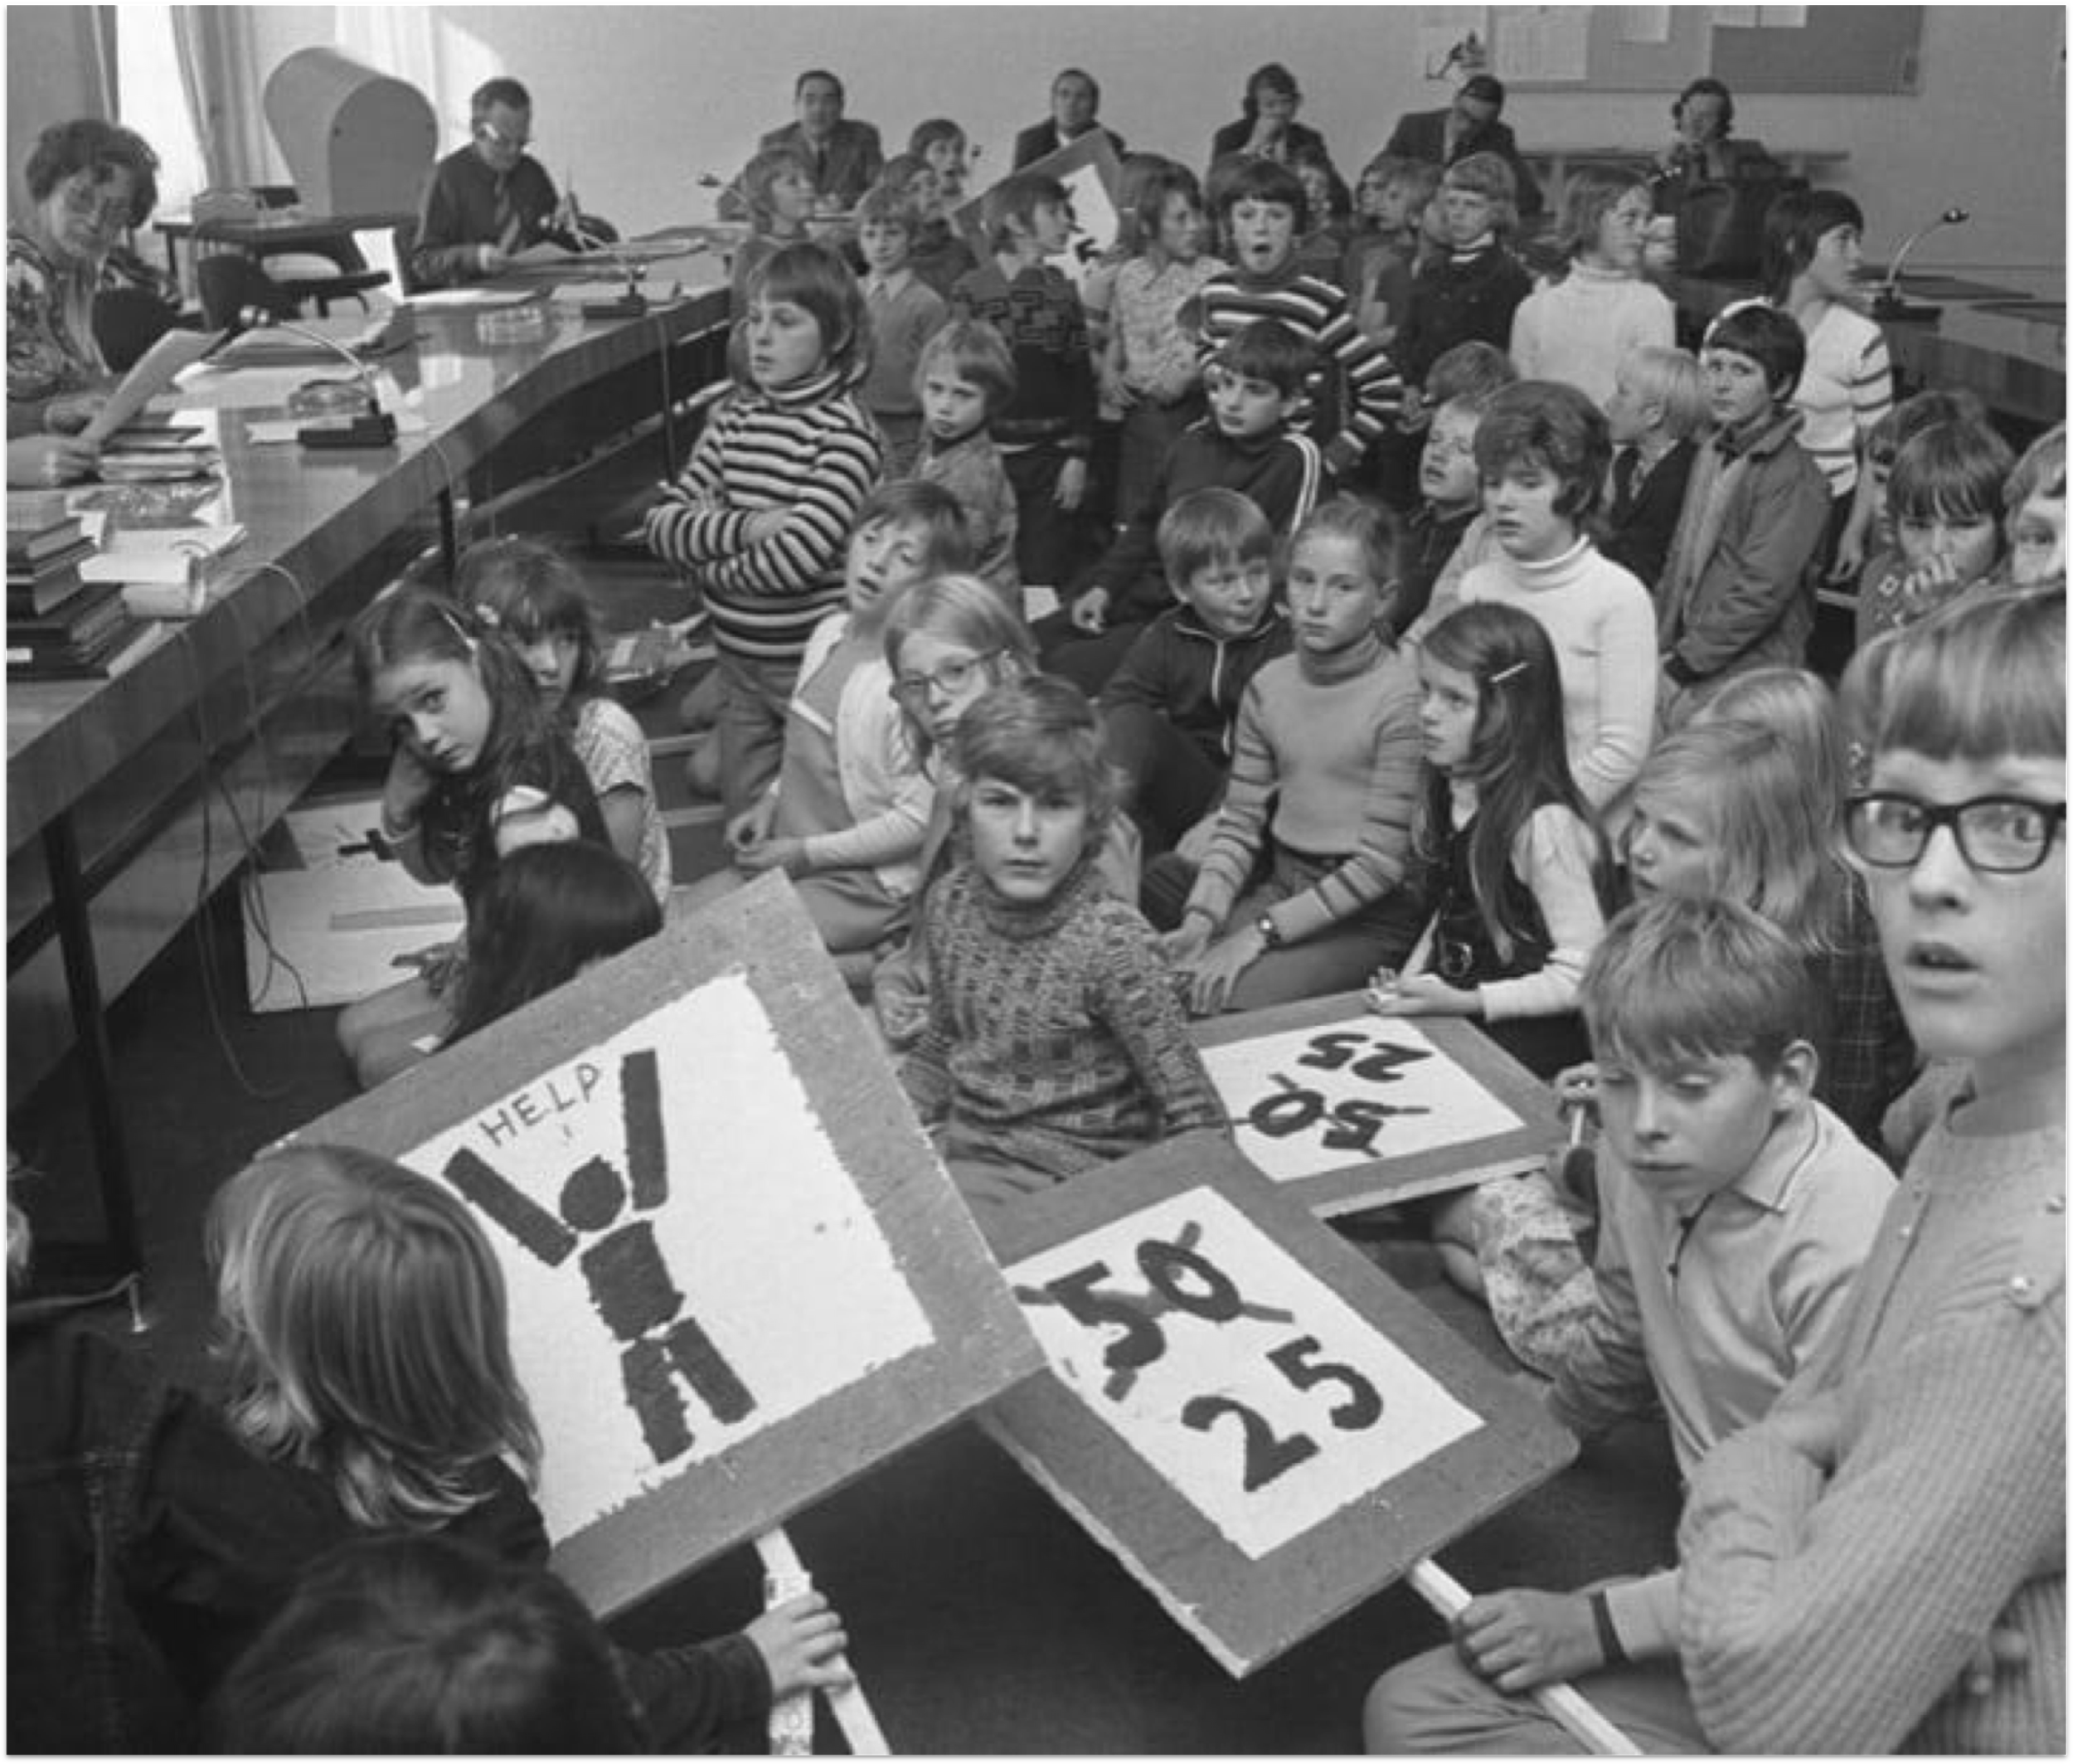 In 1972, more than 400 children in the Netherlands were killed in traffic accidents. These children protested to their elected representatives.